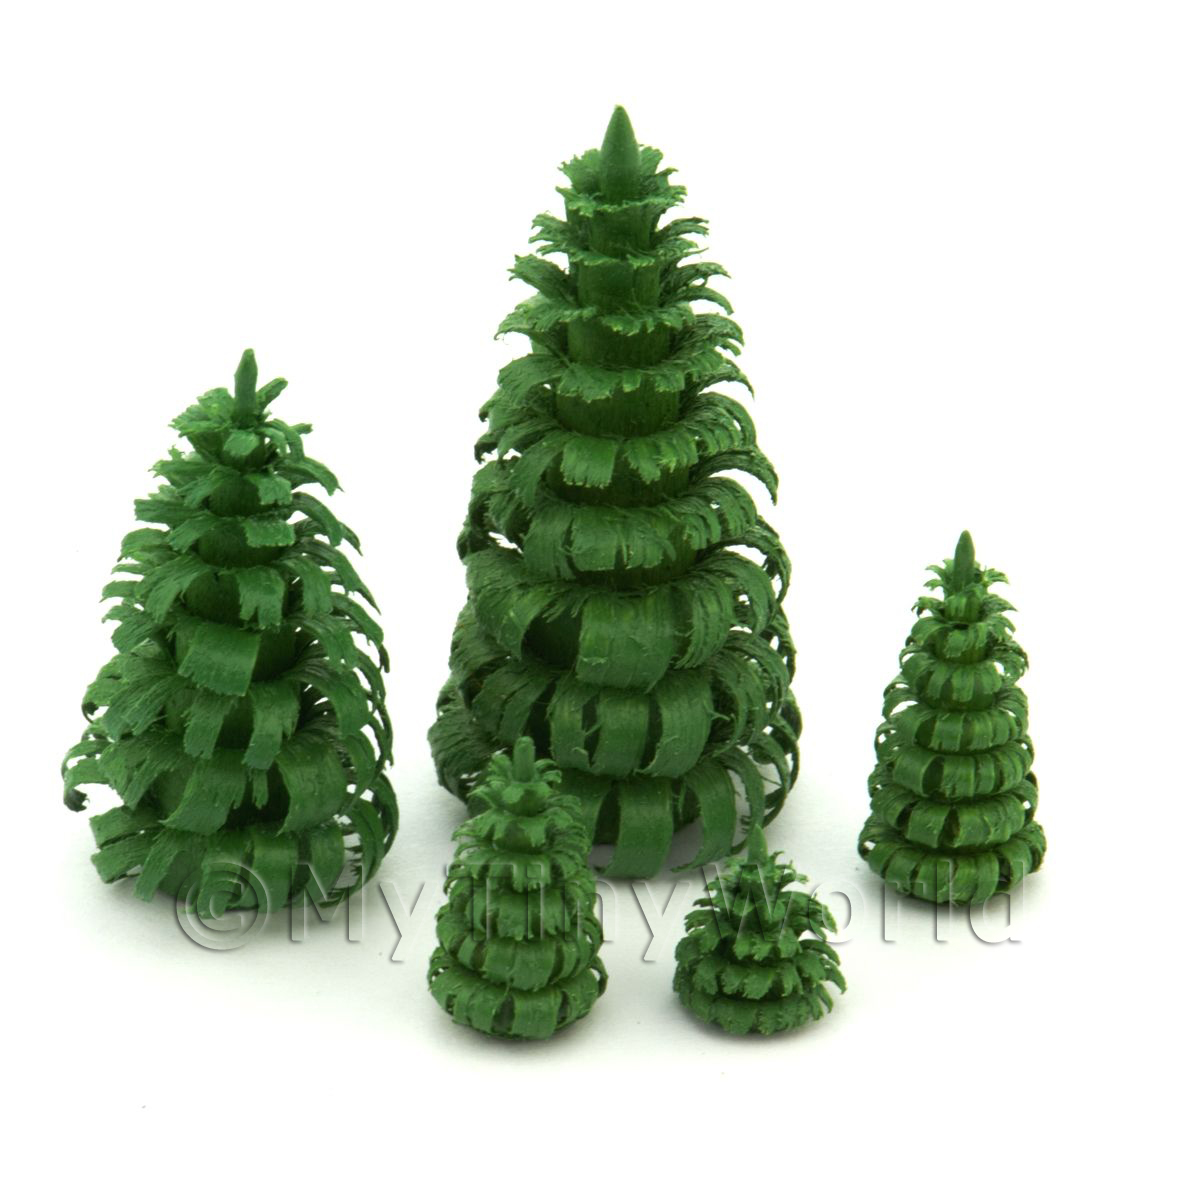 Dolls House Miniature Set of 5 Green Trees